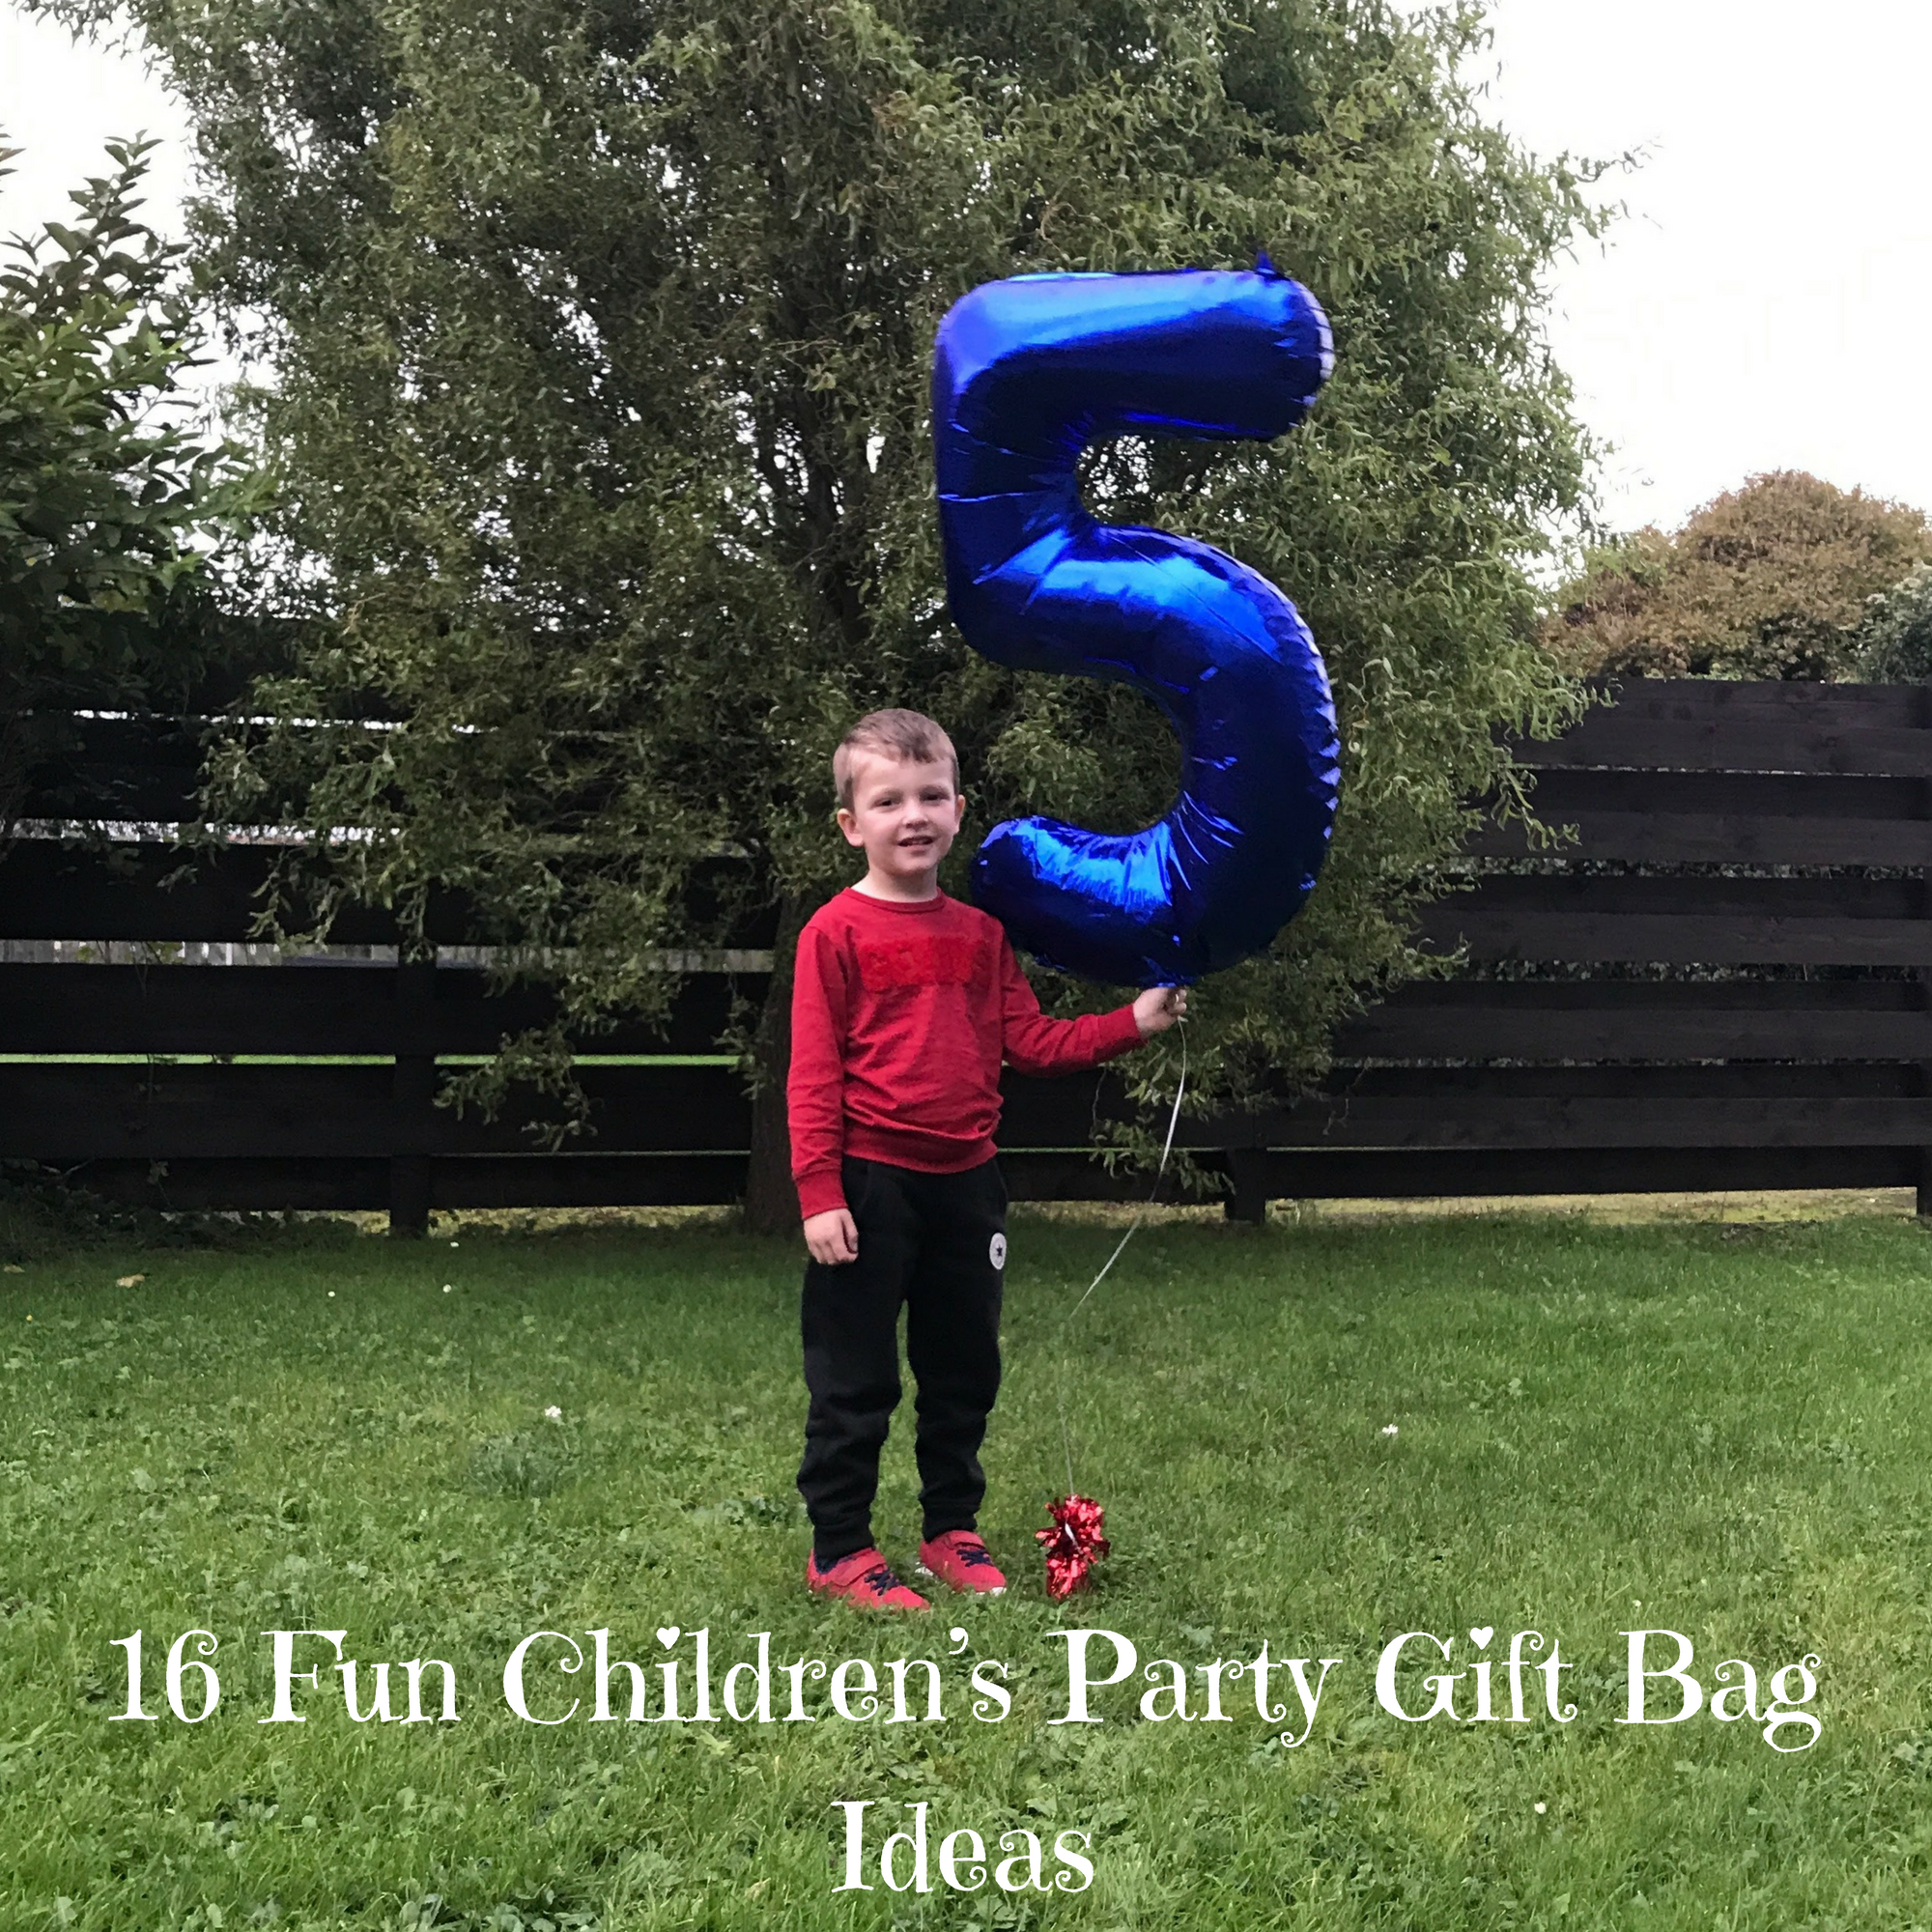 16 Fun Children's Party Gift Bag Ideas